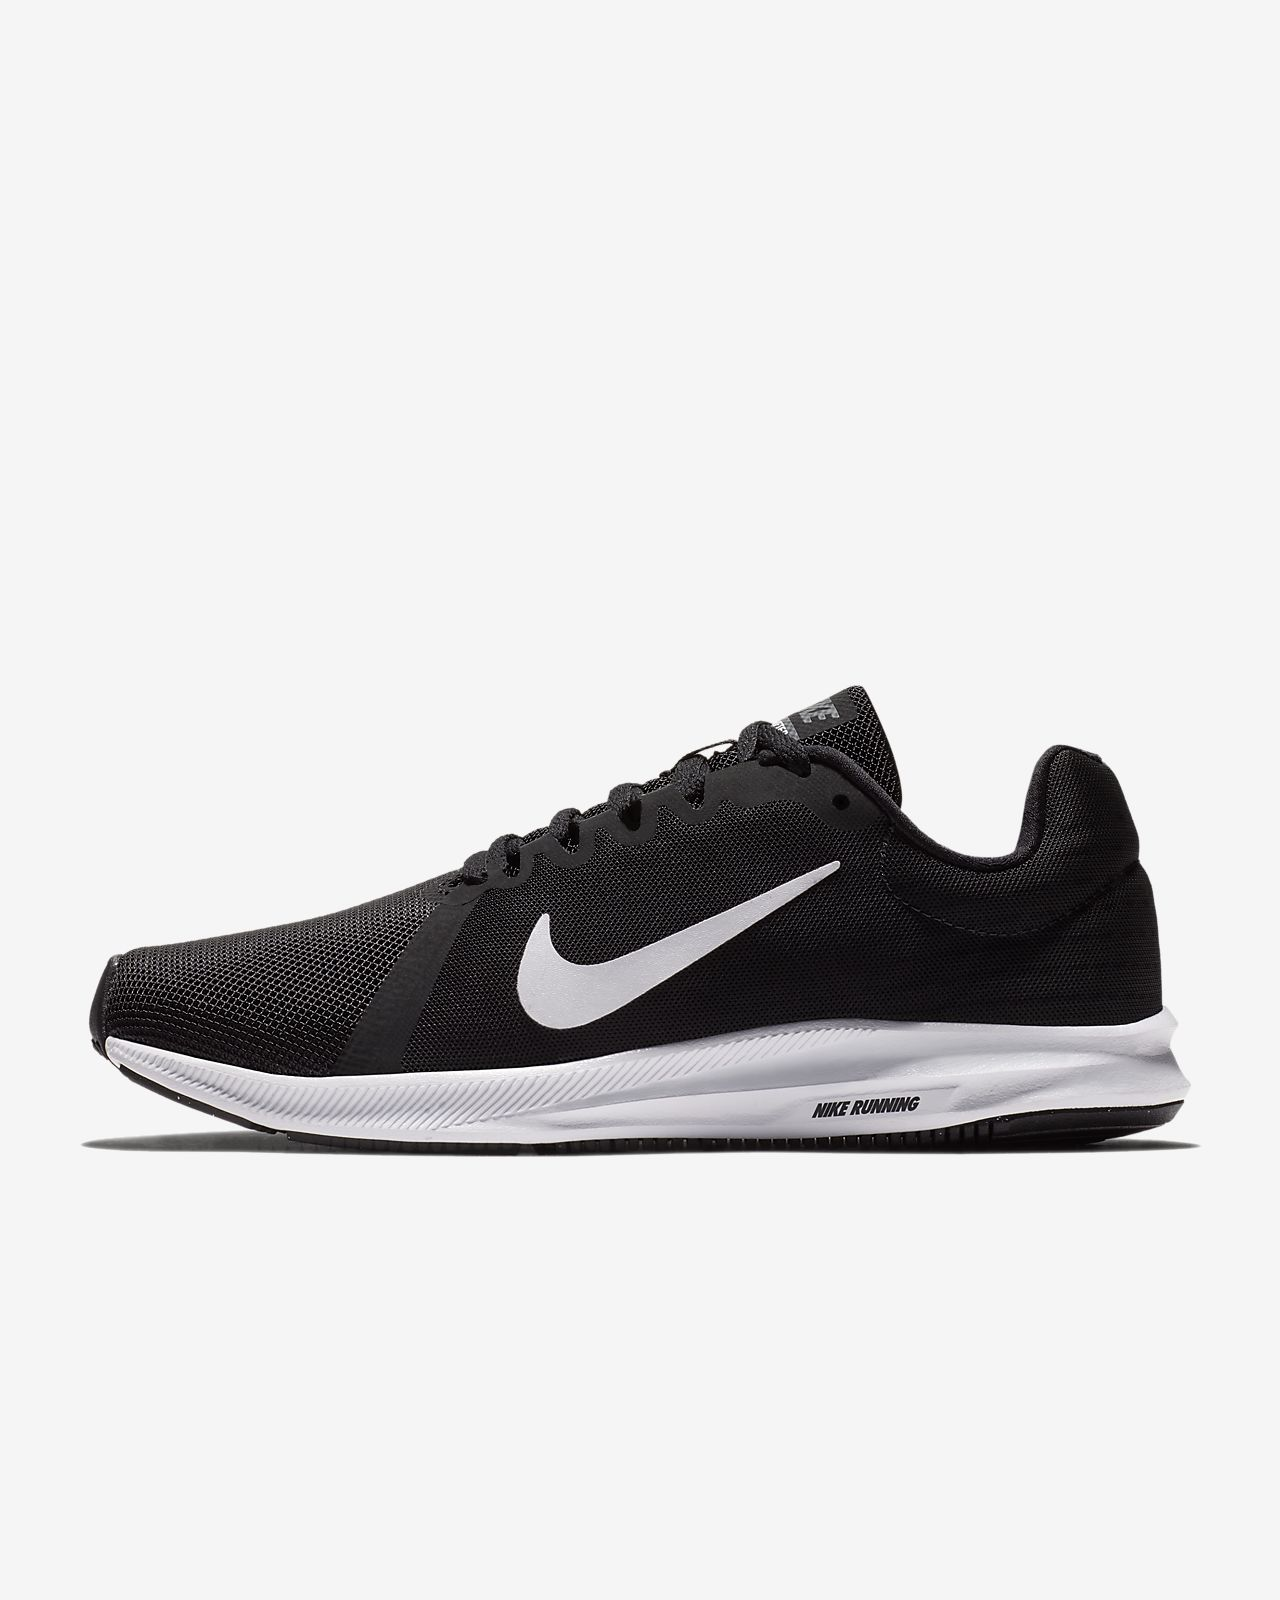 buy popular 7be51 7882c Chaussure de running Nike Downshifter 8 pour Femme ...